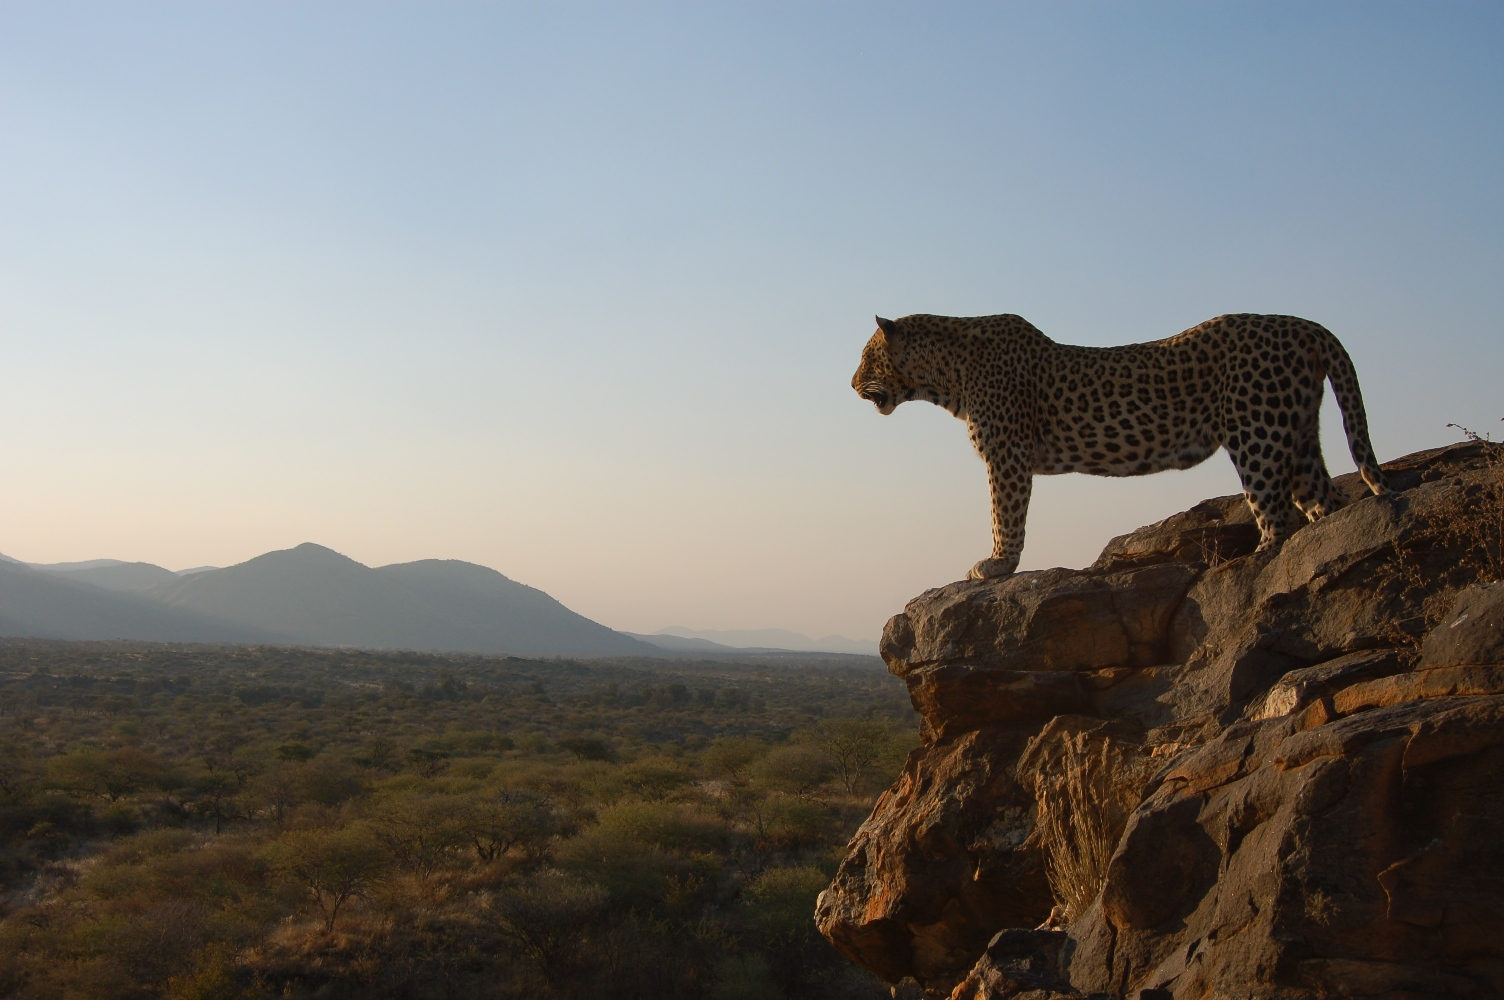 Namibia: Volunteering in the world's largest conservation area